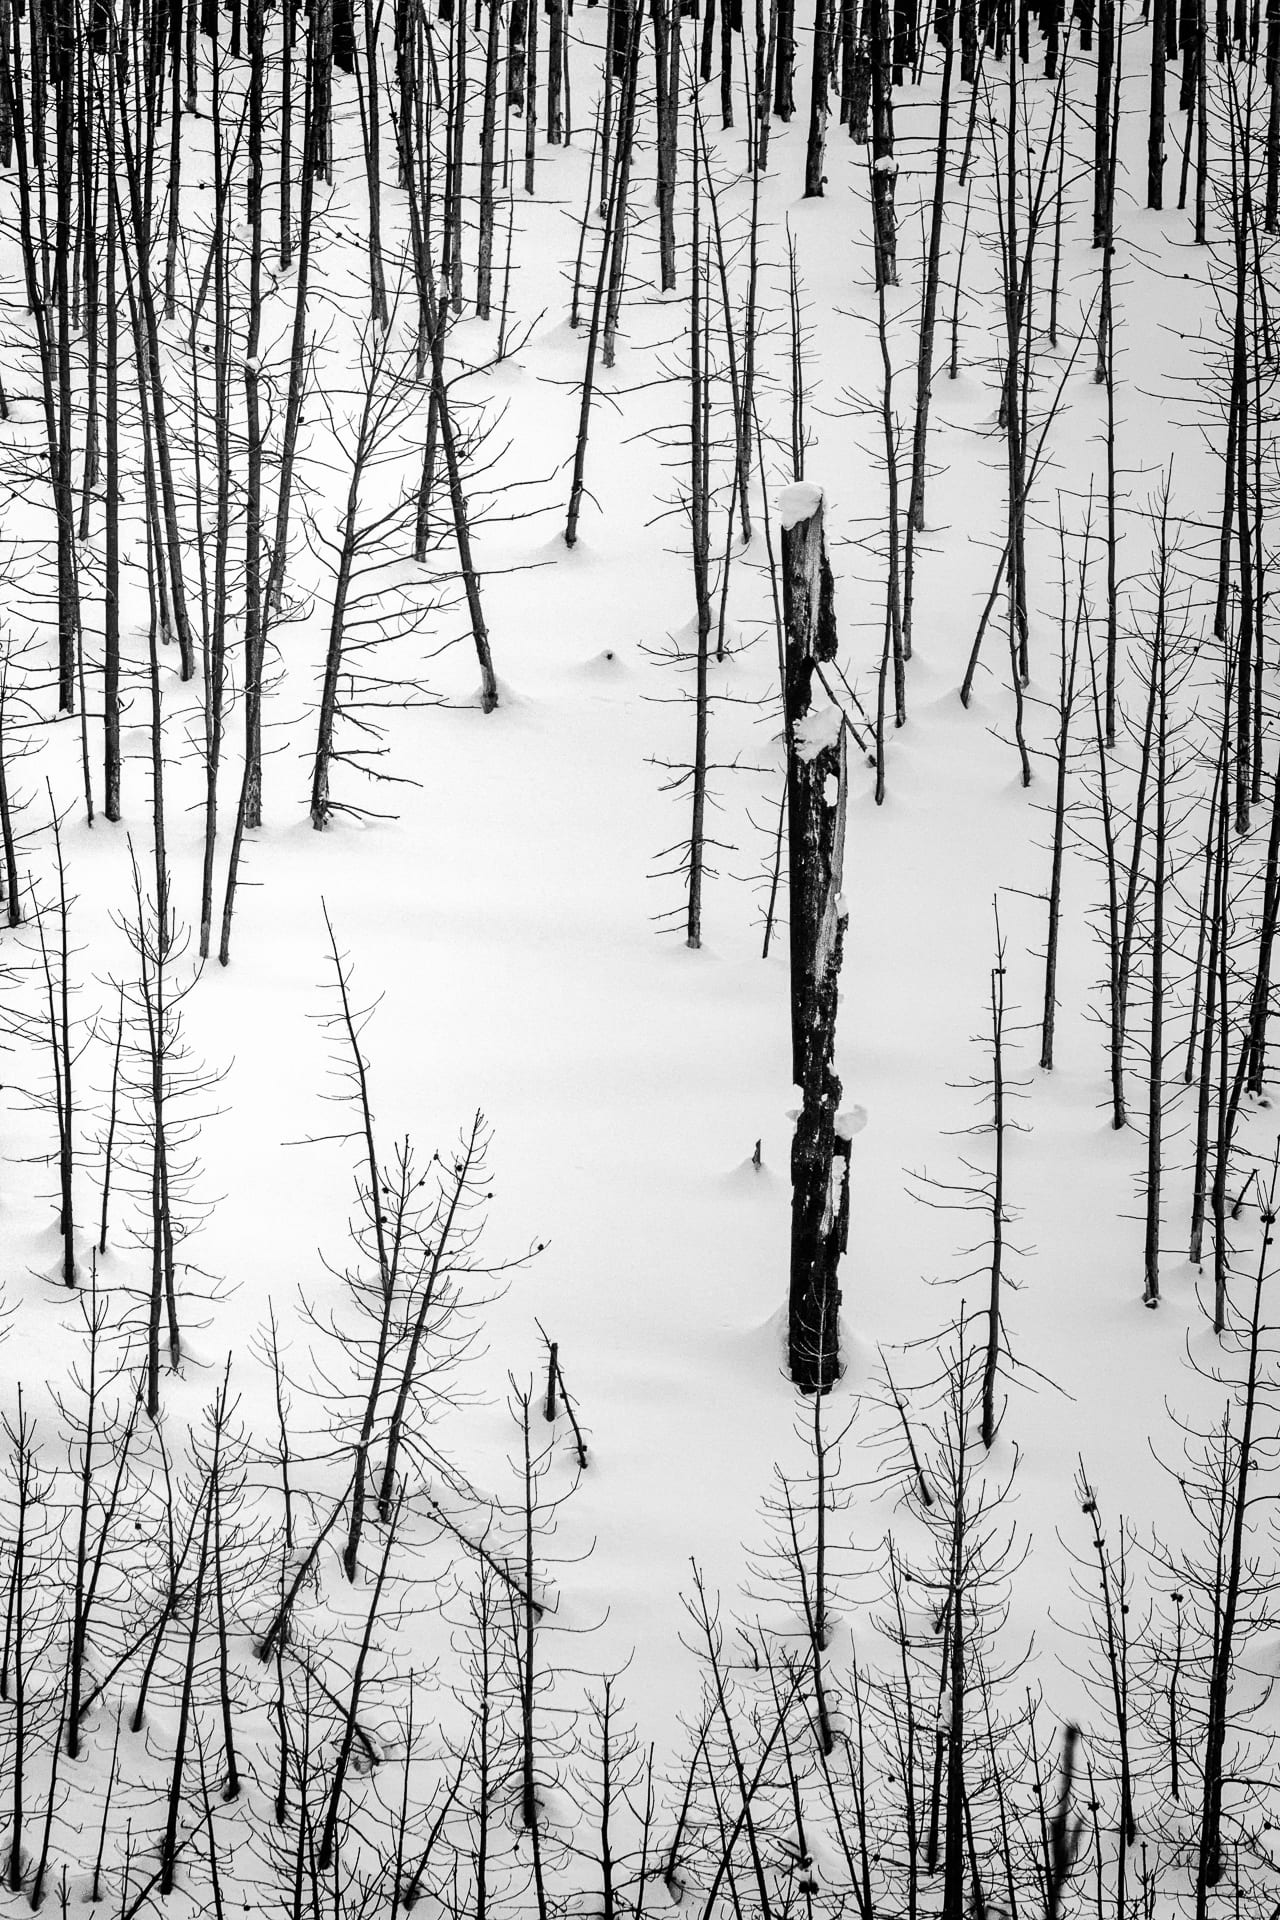 Burned forest of trees in snow.